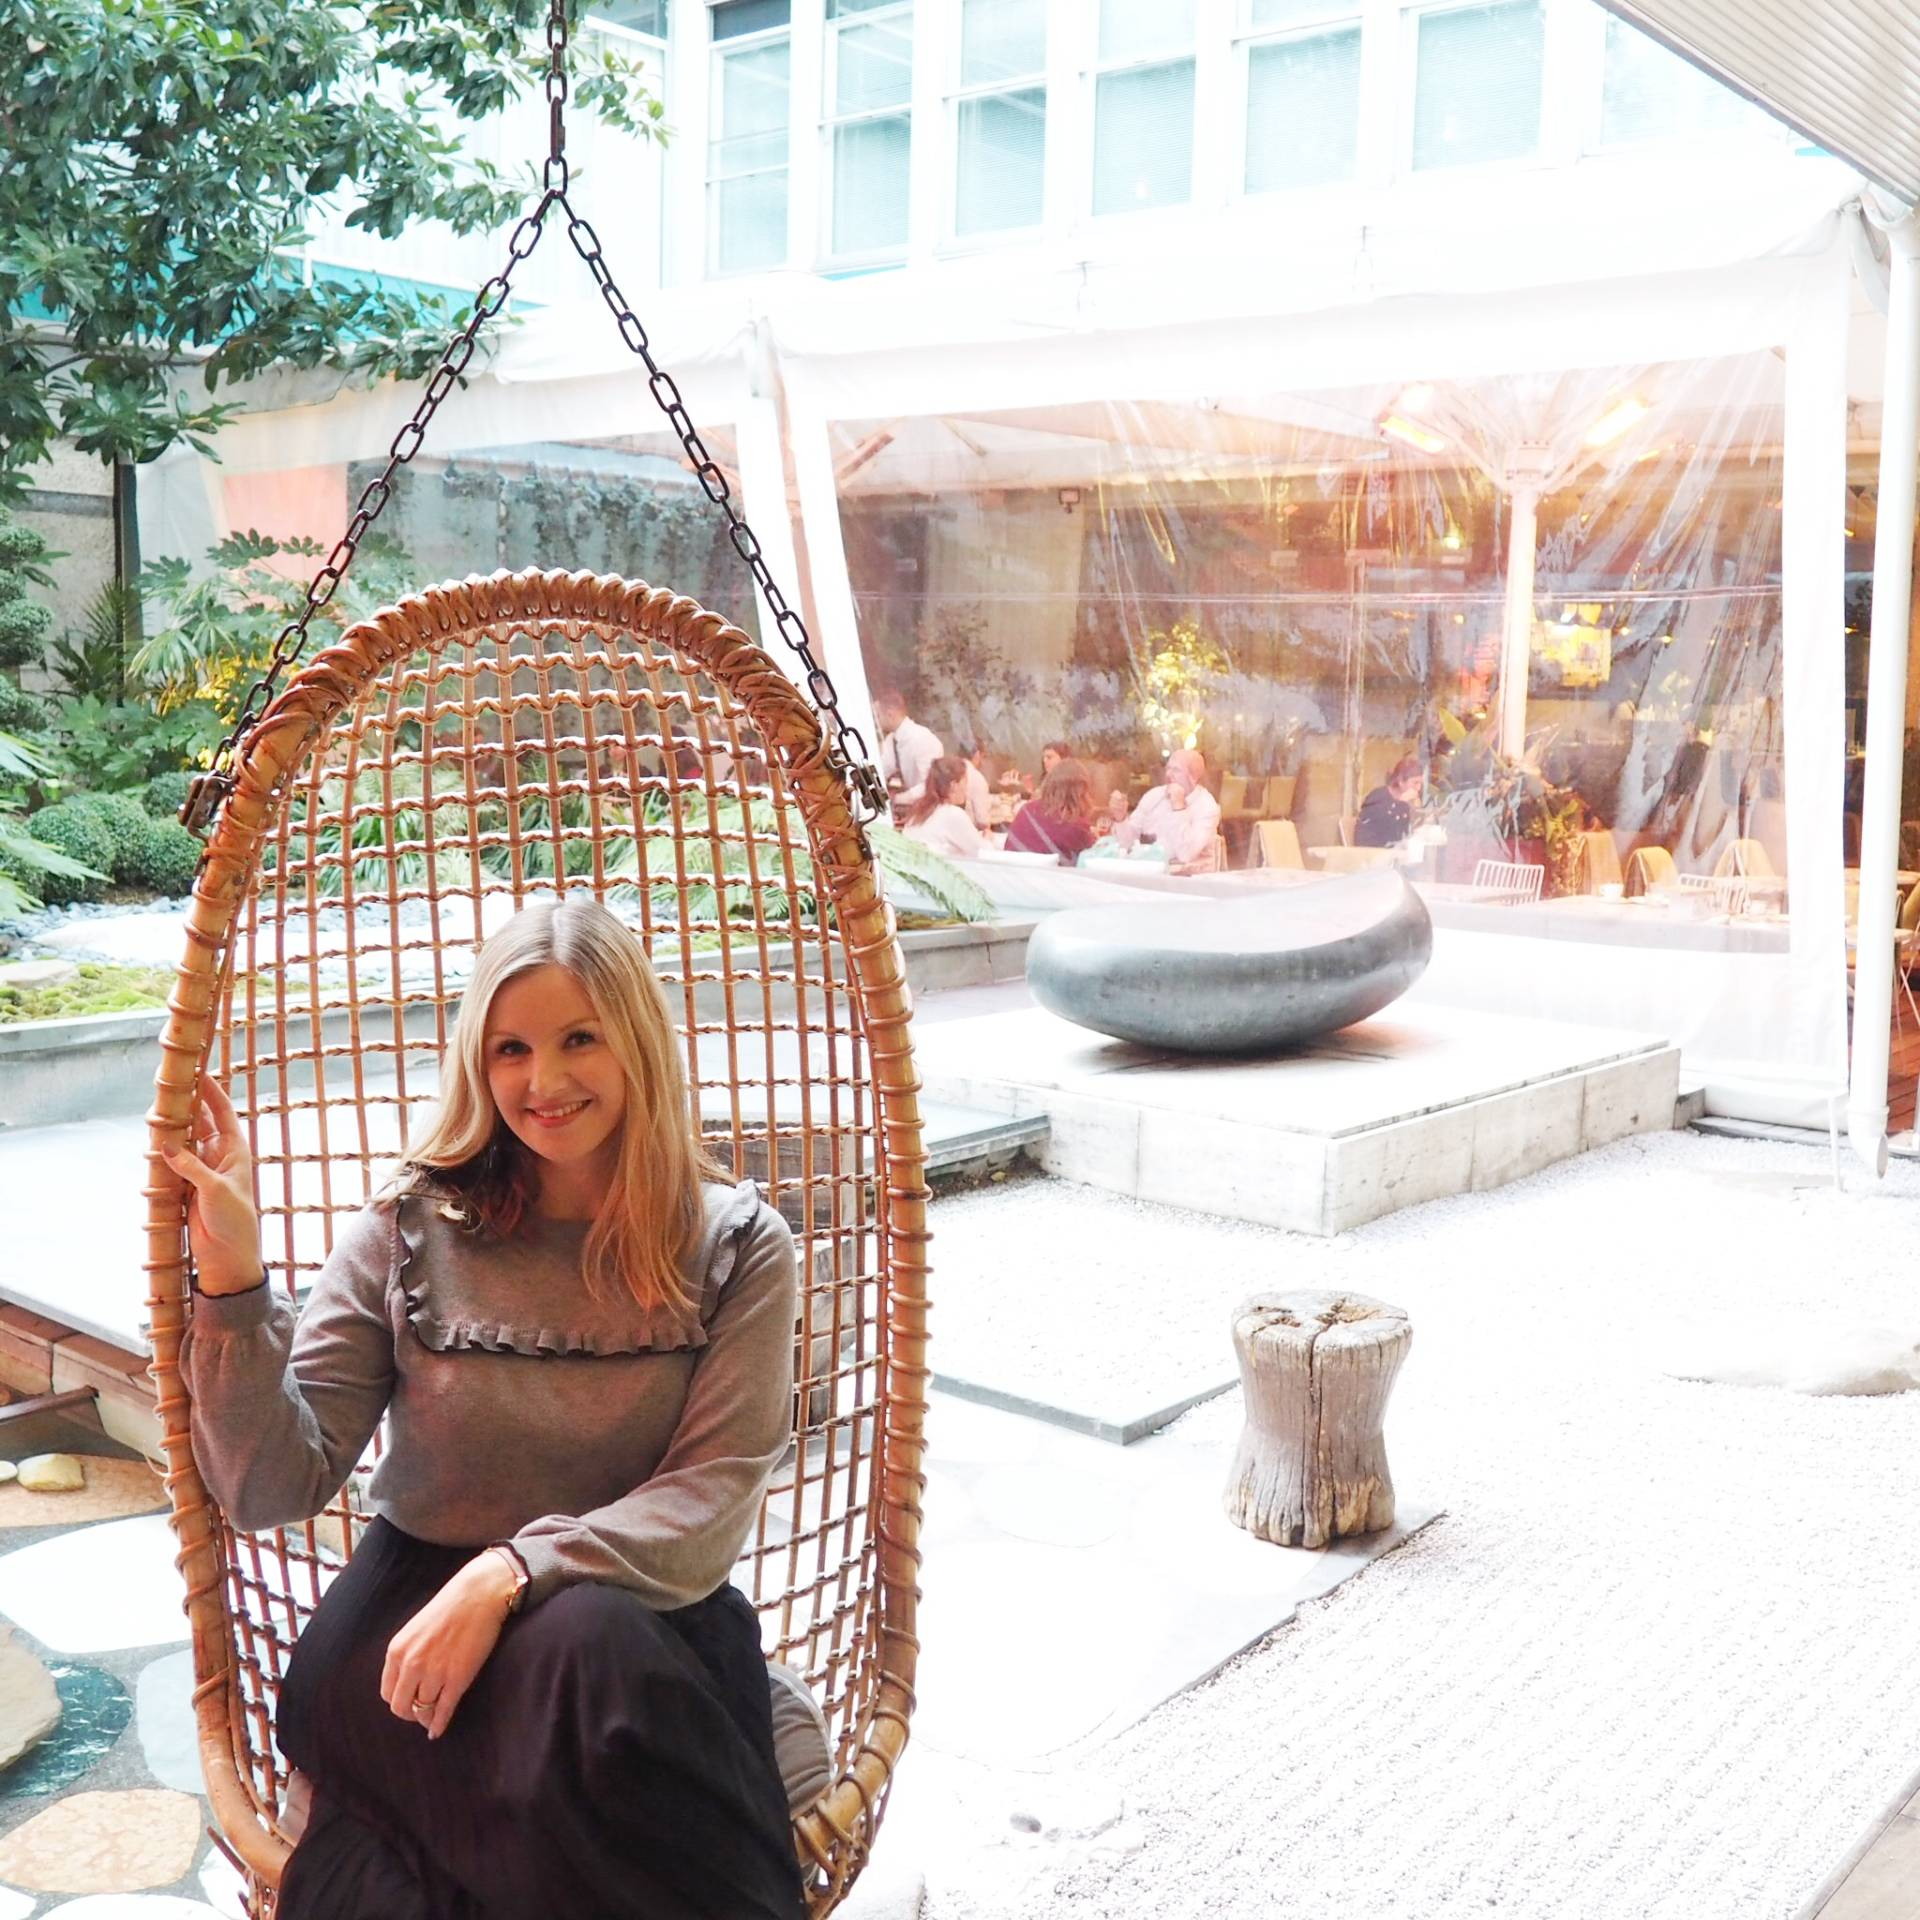 Mad-Hatters-Tea-Party-Sanderson-Hotel-London-Review